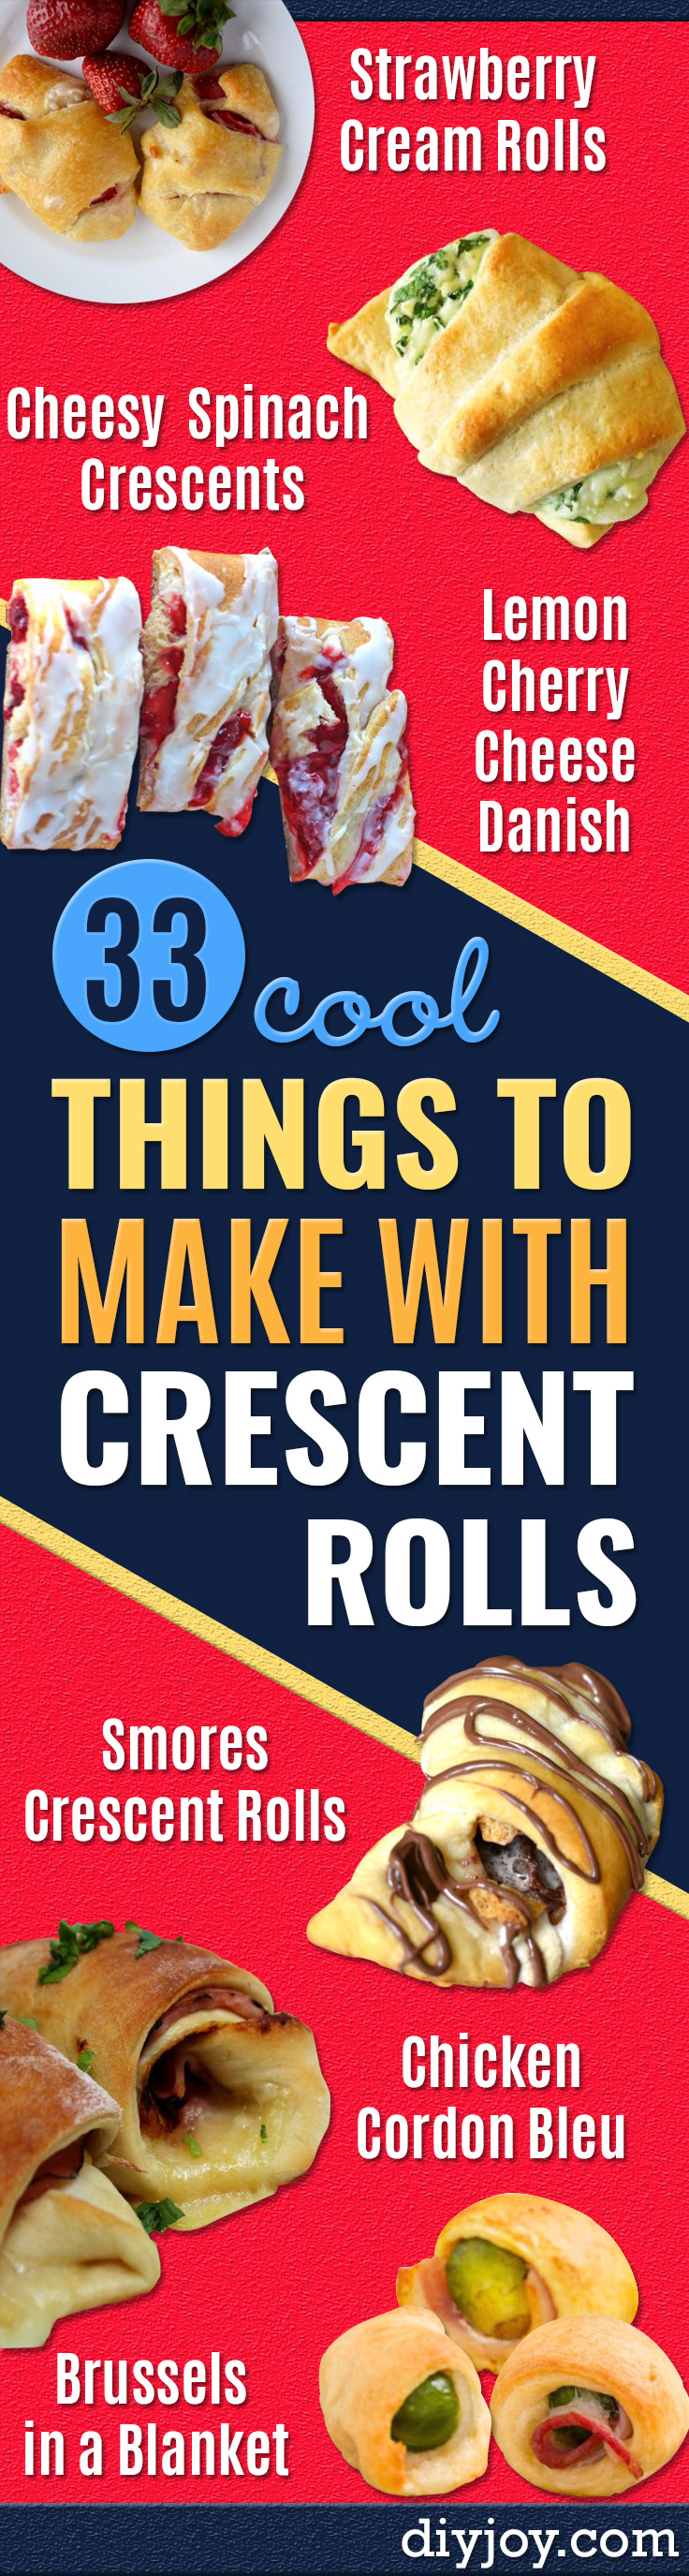 crescent roll recipes - Easy Homemade Dinner recipe ideas with crescent rolls easy Breakfast, Snack, Appetizers and Dessert - With Chicken and Ground Beef, Hot Dogs, Pizza, Garlic Taco, Sweet Desserts #recipes